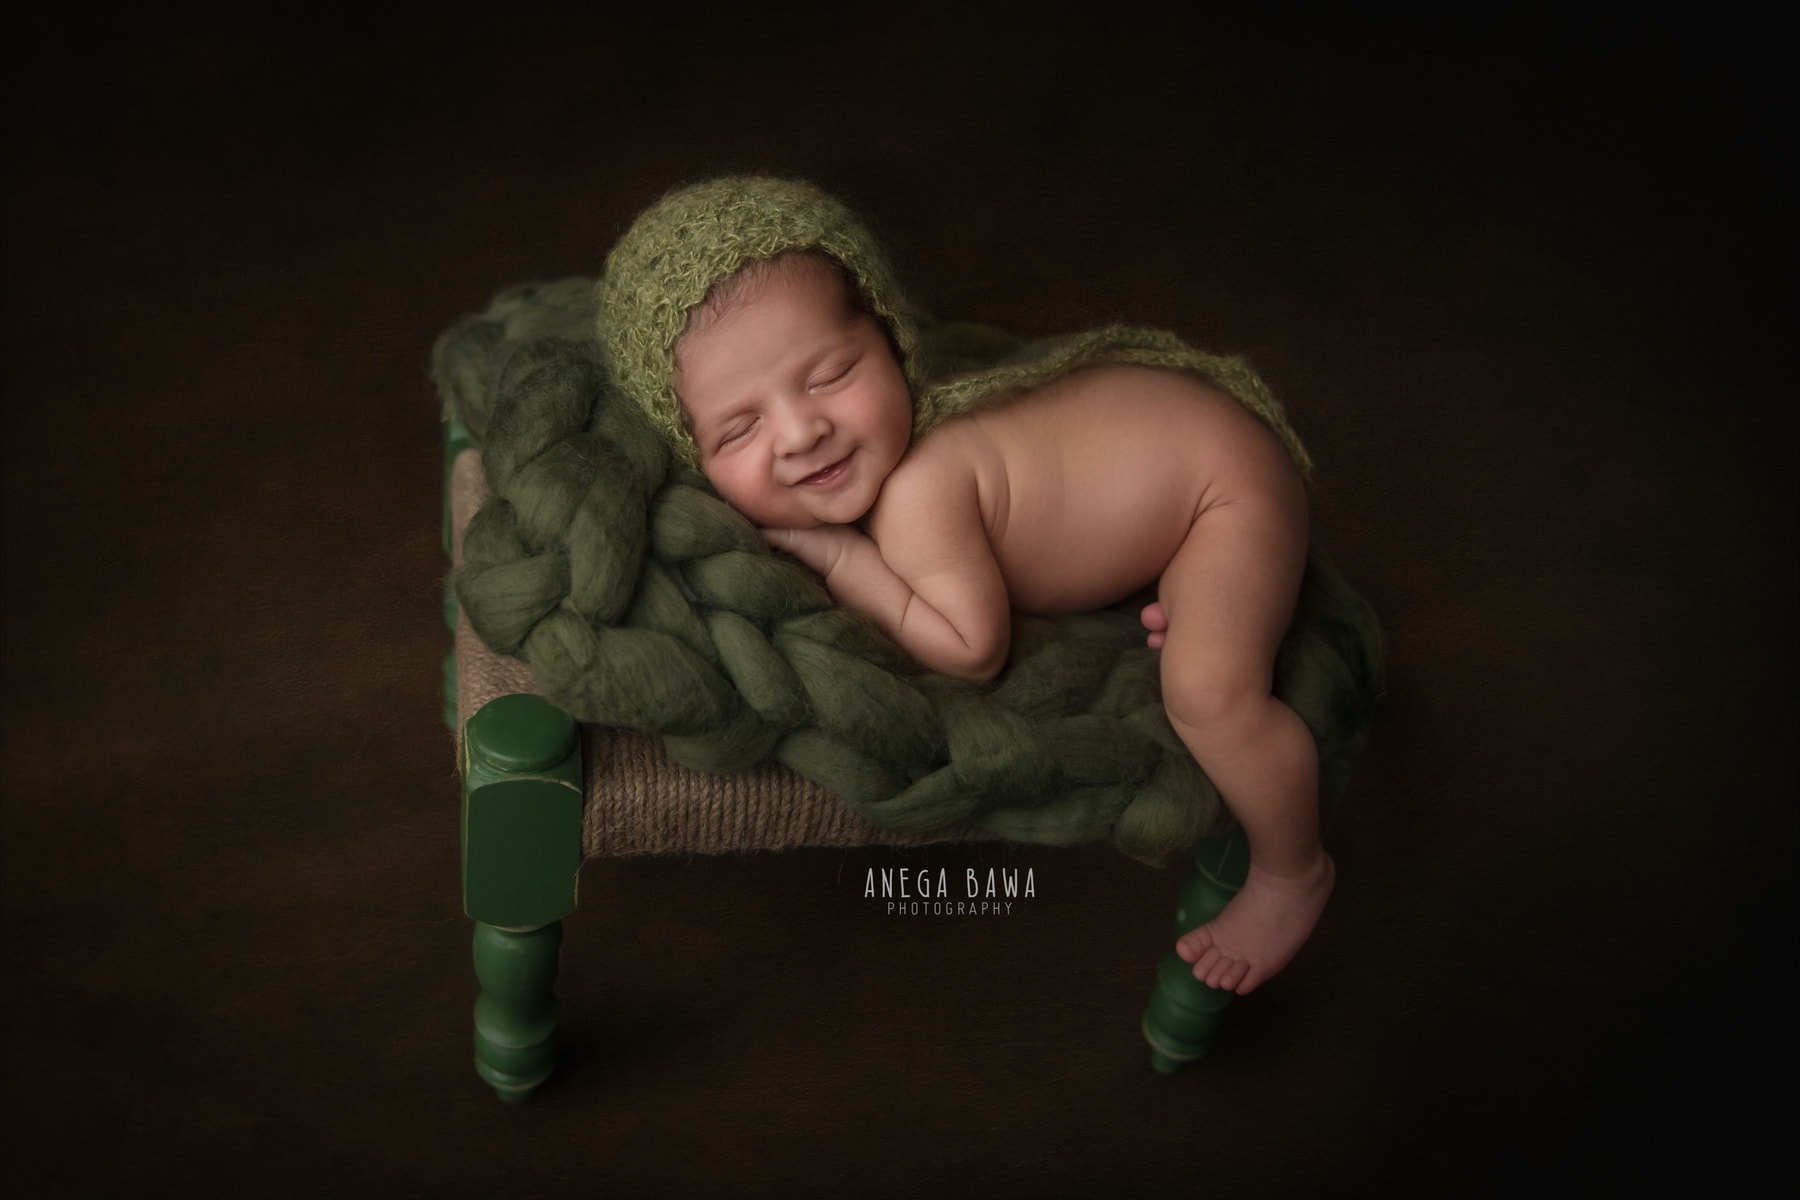 brown green newborn photography delhi 22 days baby boy photoshoot gurgaon anega bawa